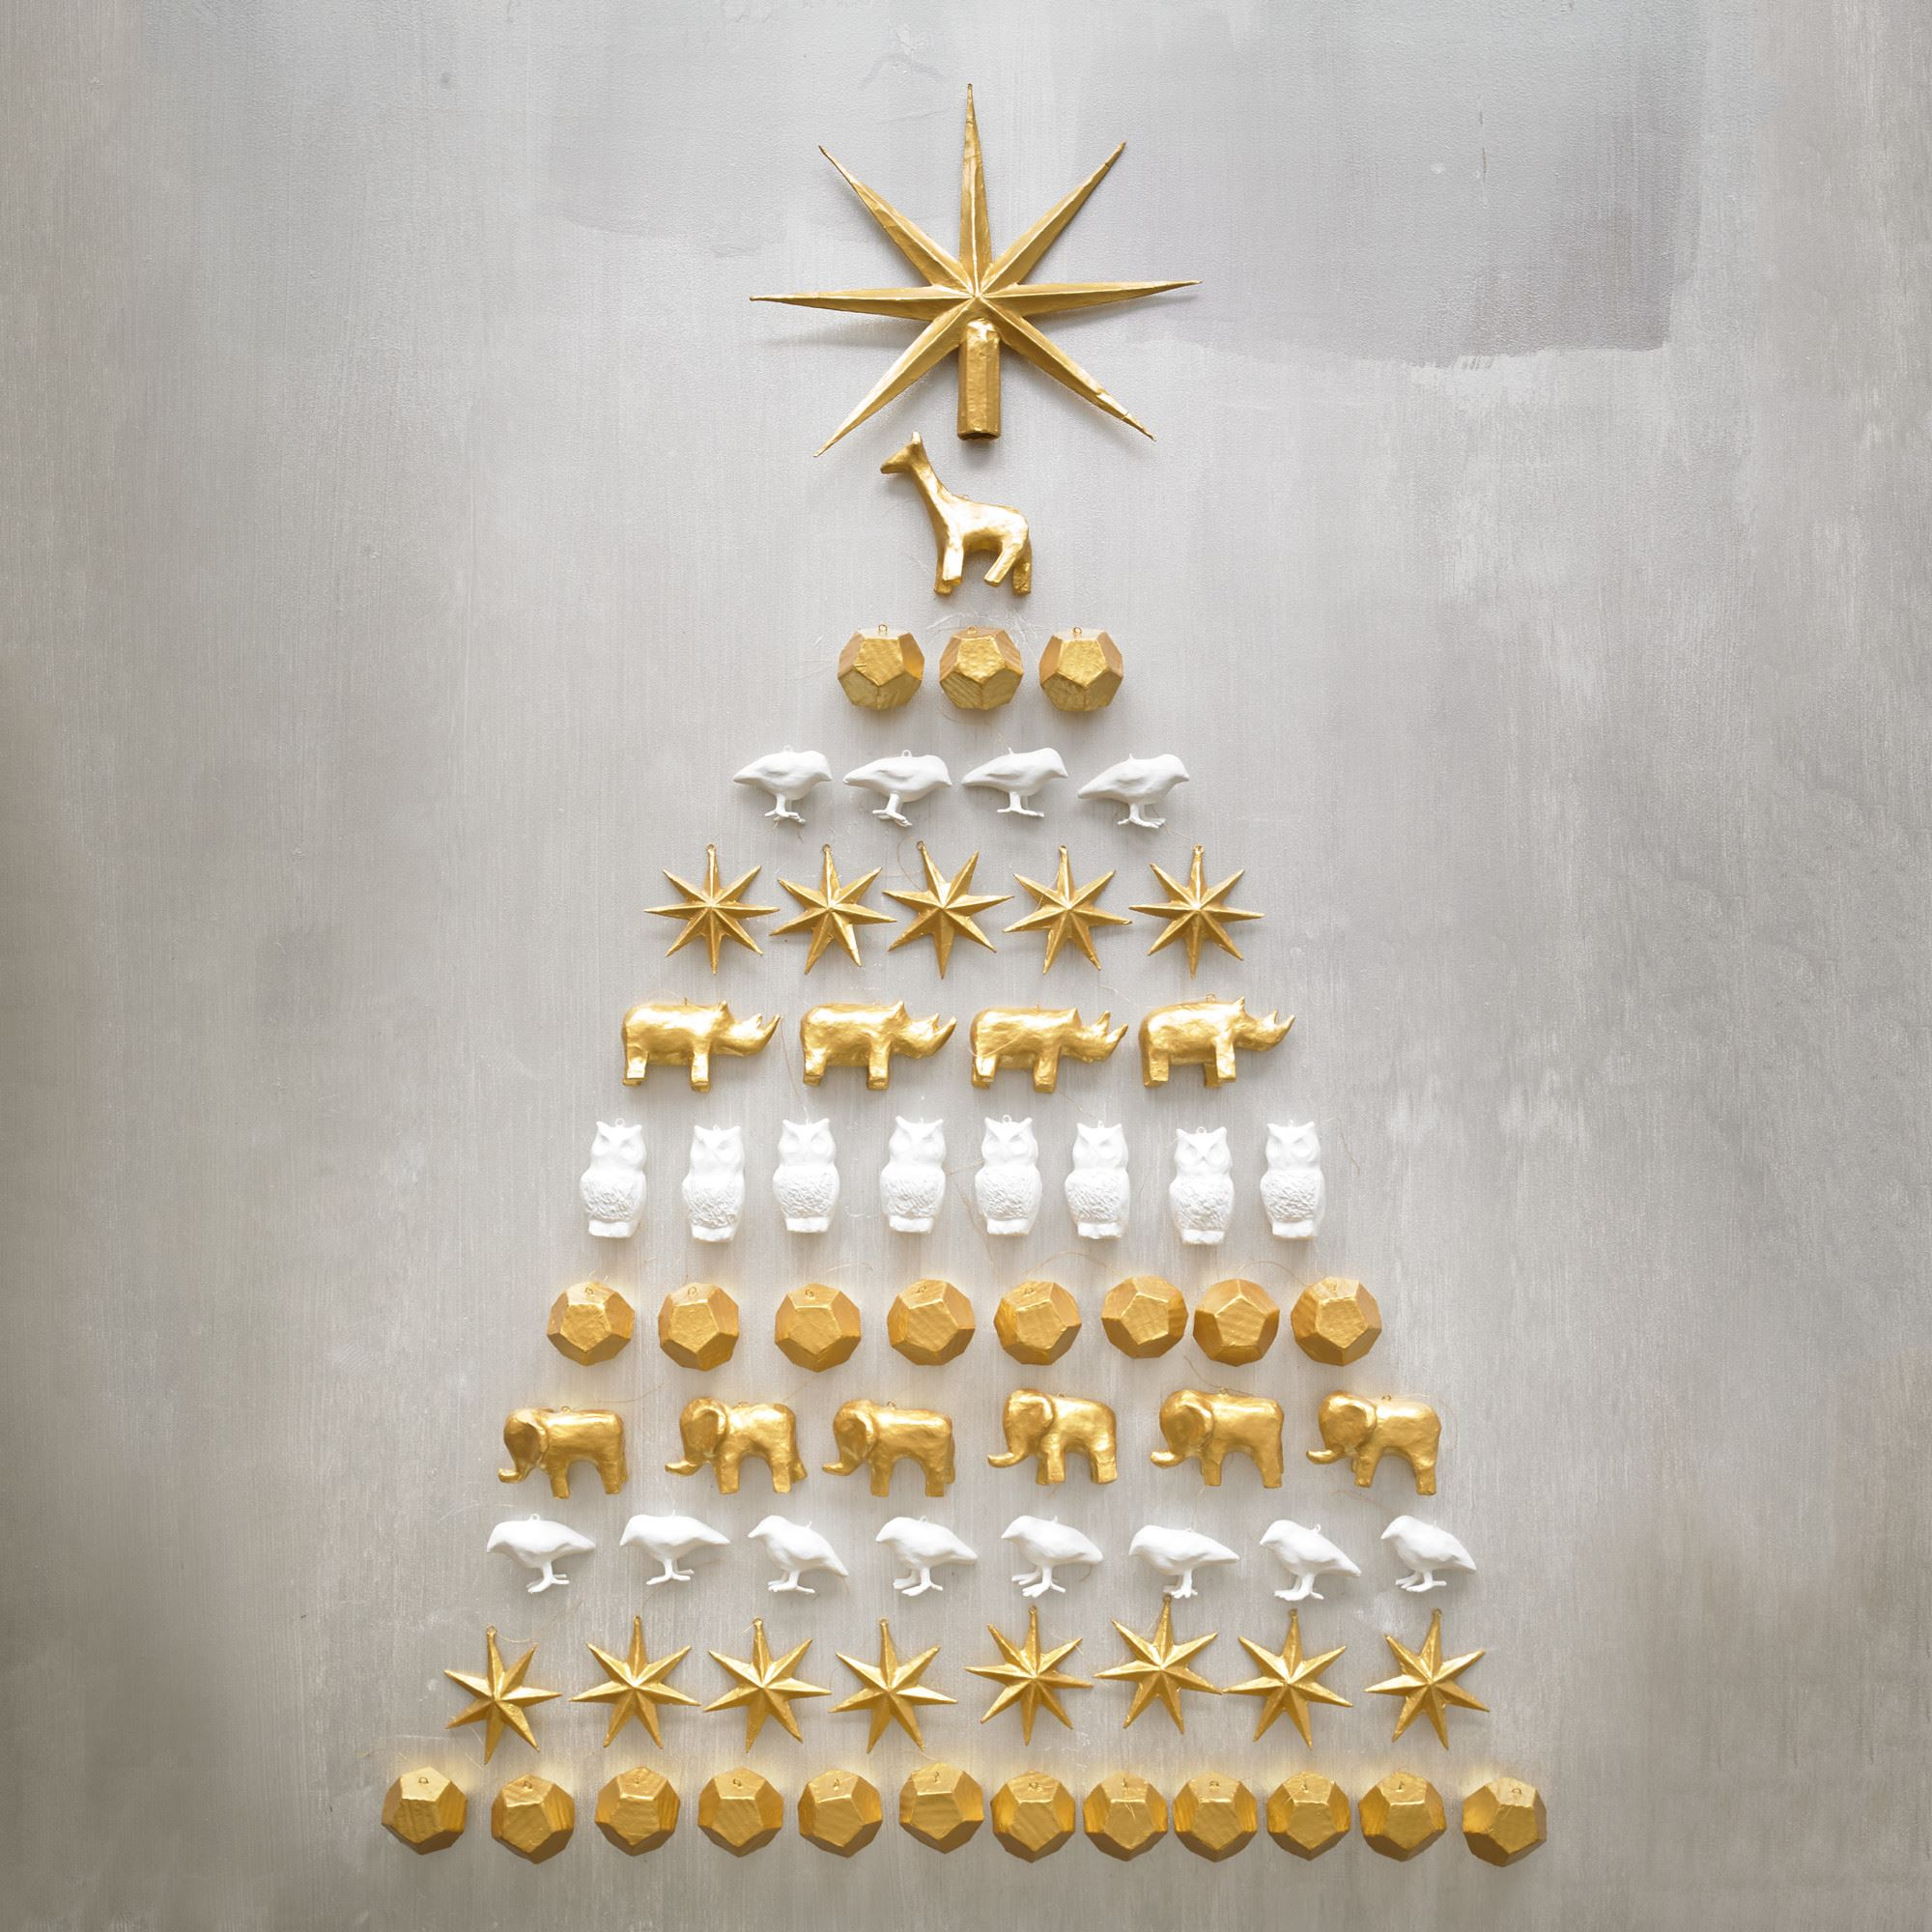 Gold and white ornament offerings from DwellStudio